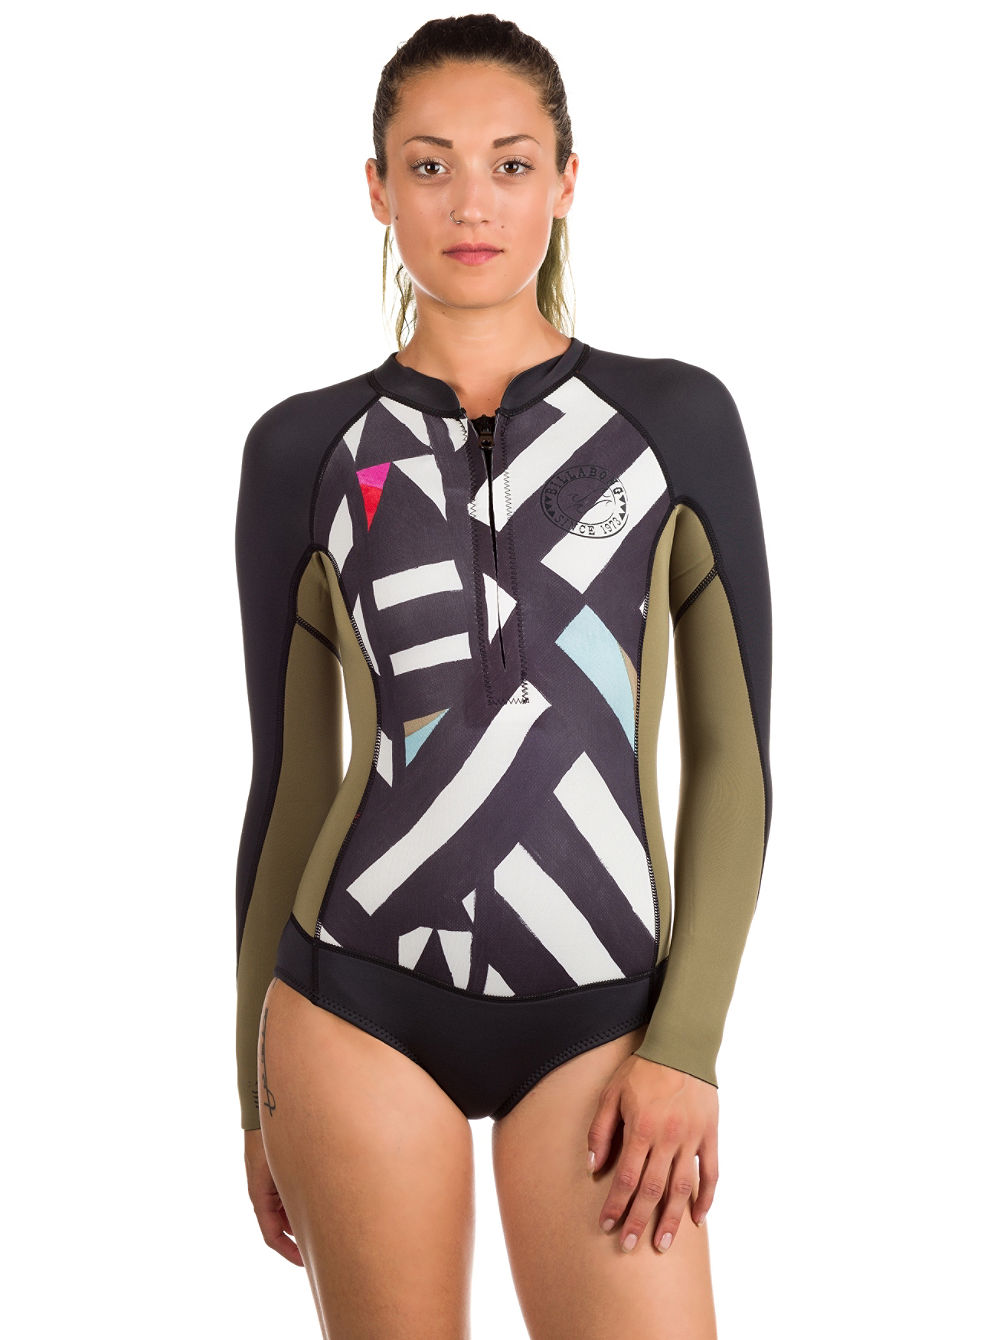 db69ae7c3d Buy Billabong Salty Dayz Ls Spring Wetsuit online at blue-tomato.com